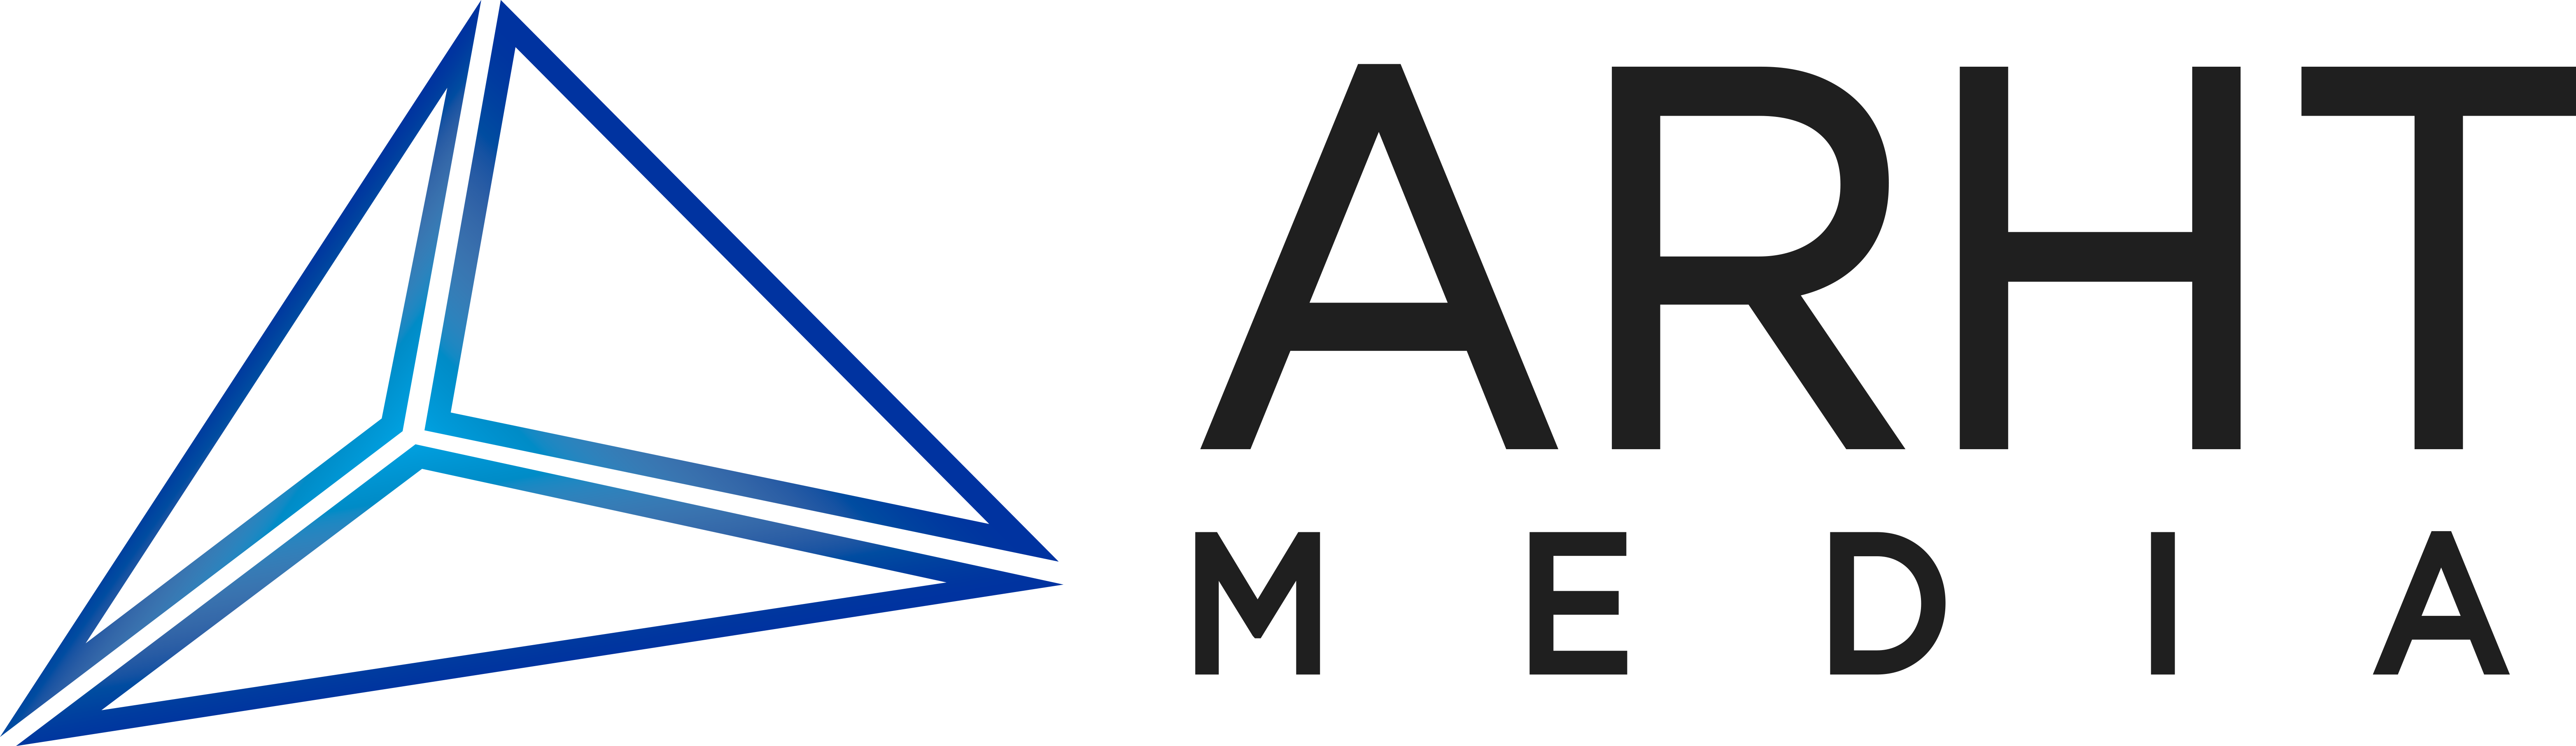 ARHT Media Announces Debentureholder Approval of Two Month Extension of 2020 Series A Debentures